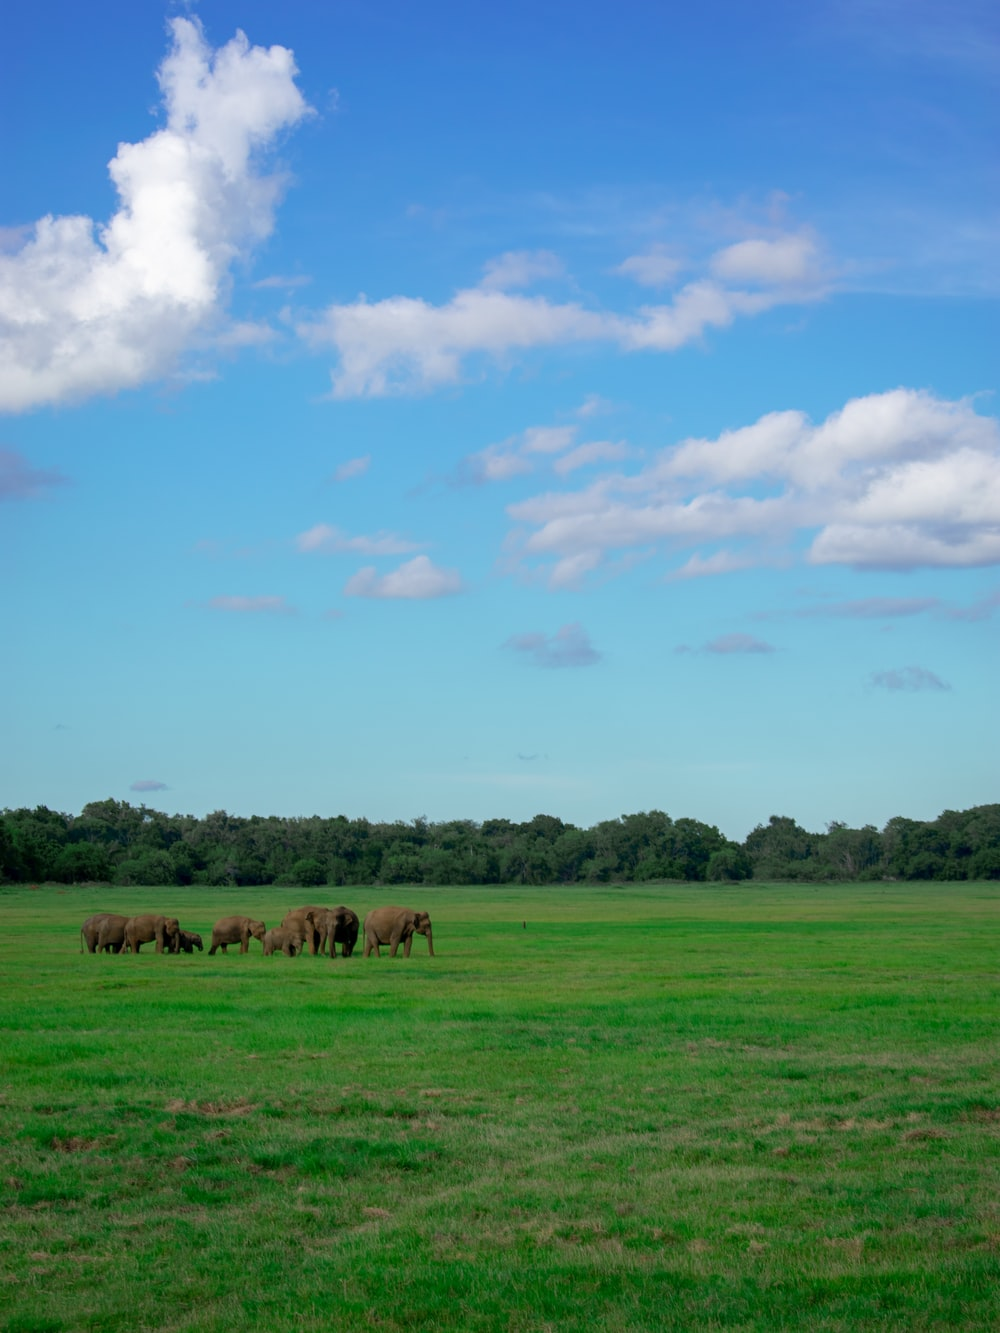 brown elephants on grass field during daytime